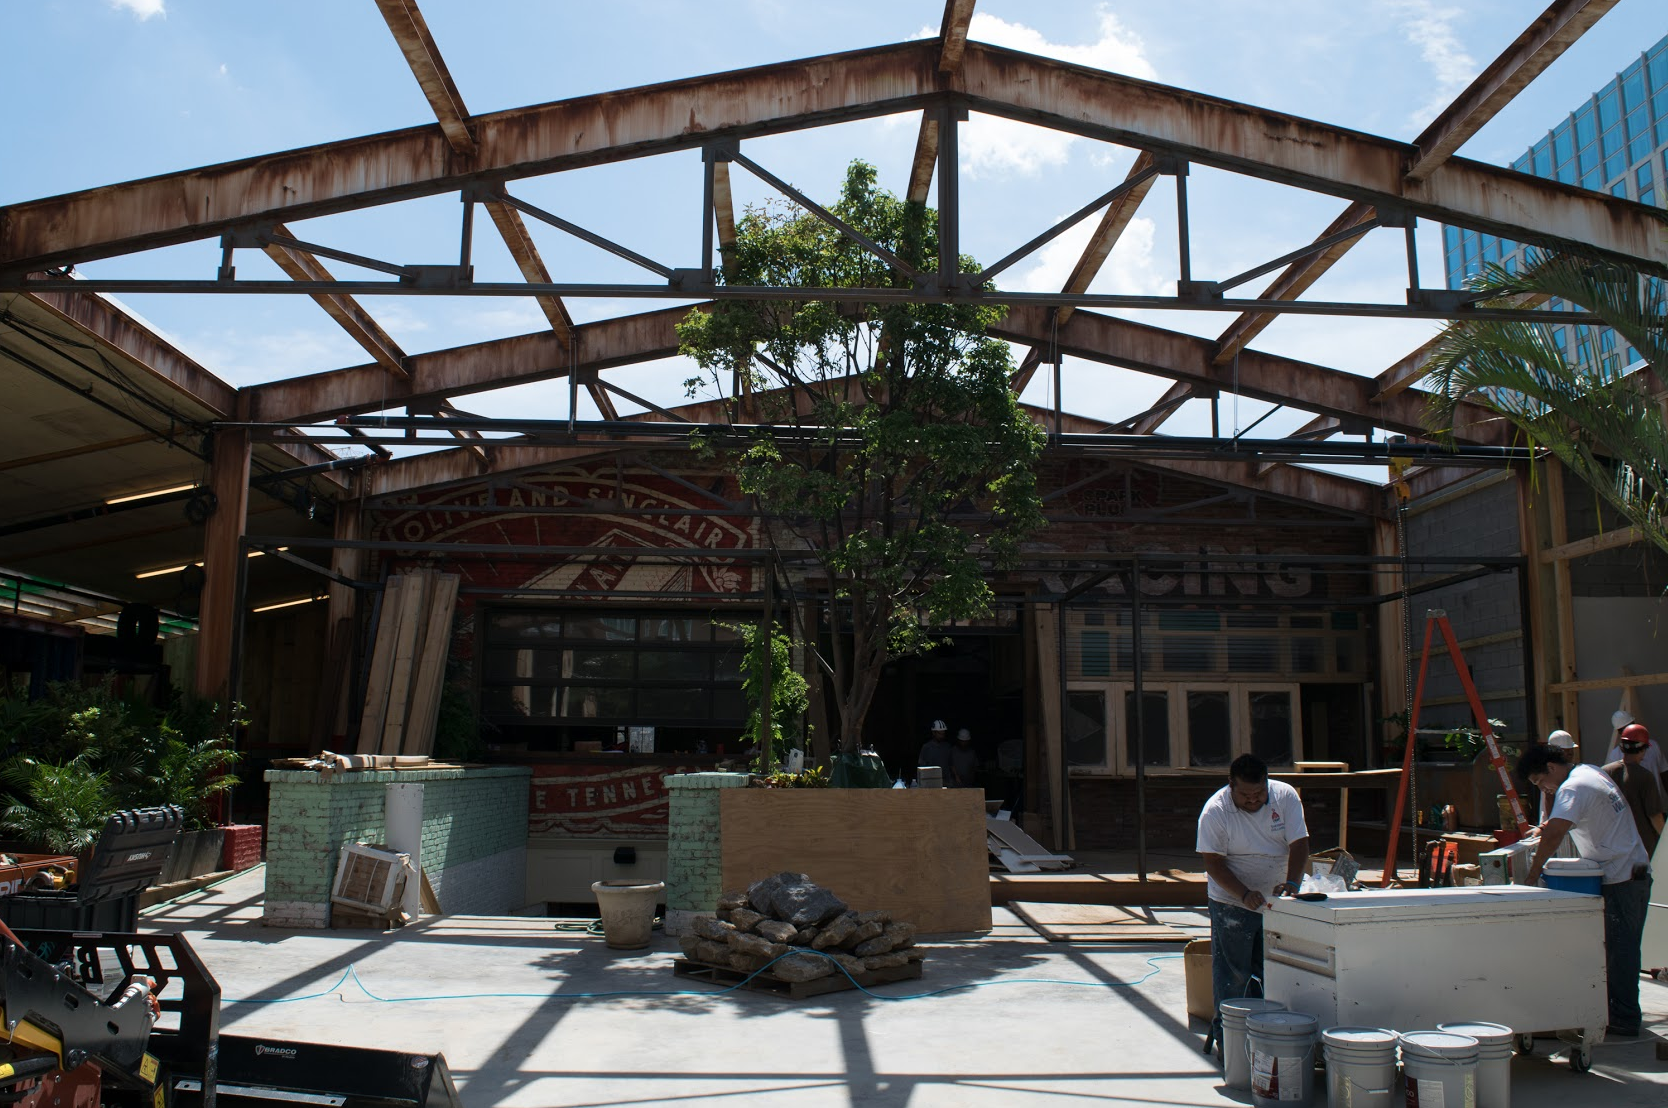 The open area backyard beer garden will be strung with lights for nighttime hang outs